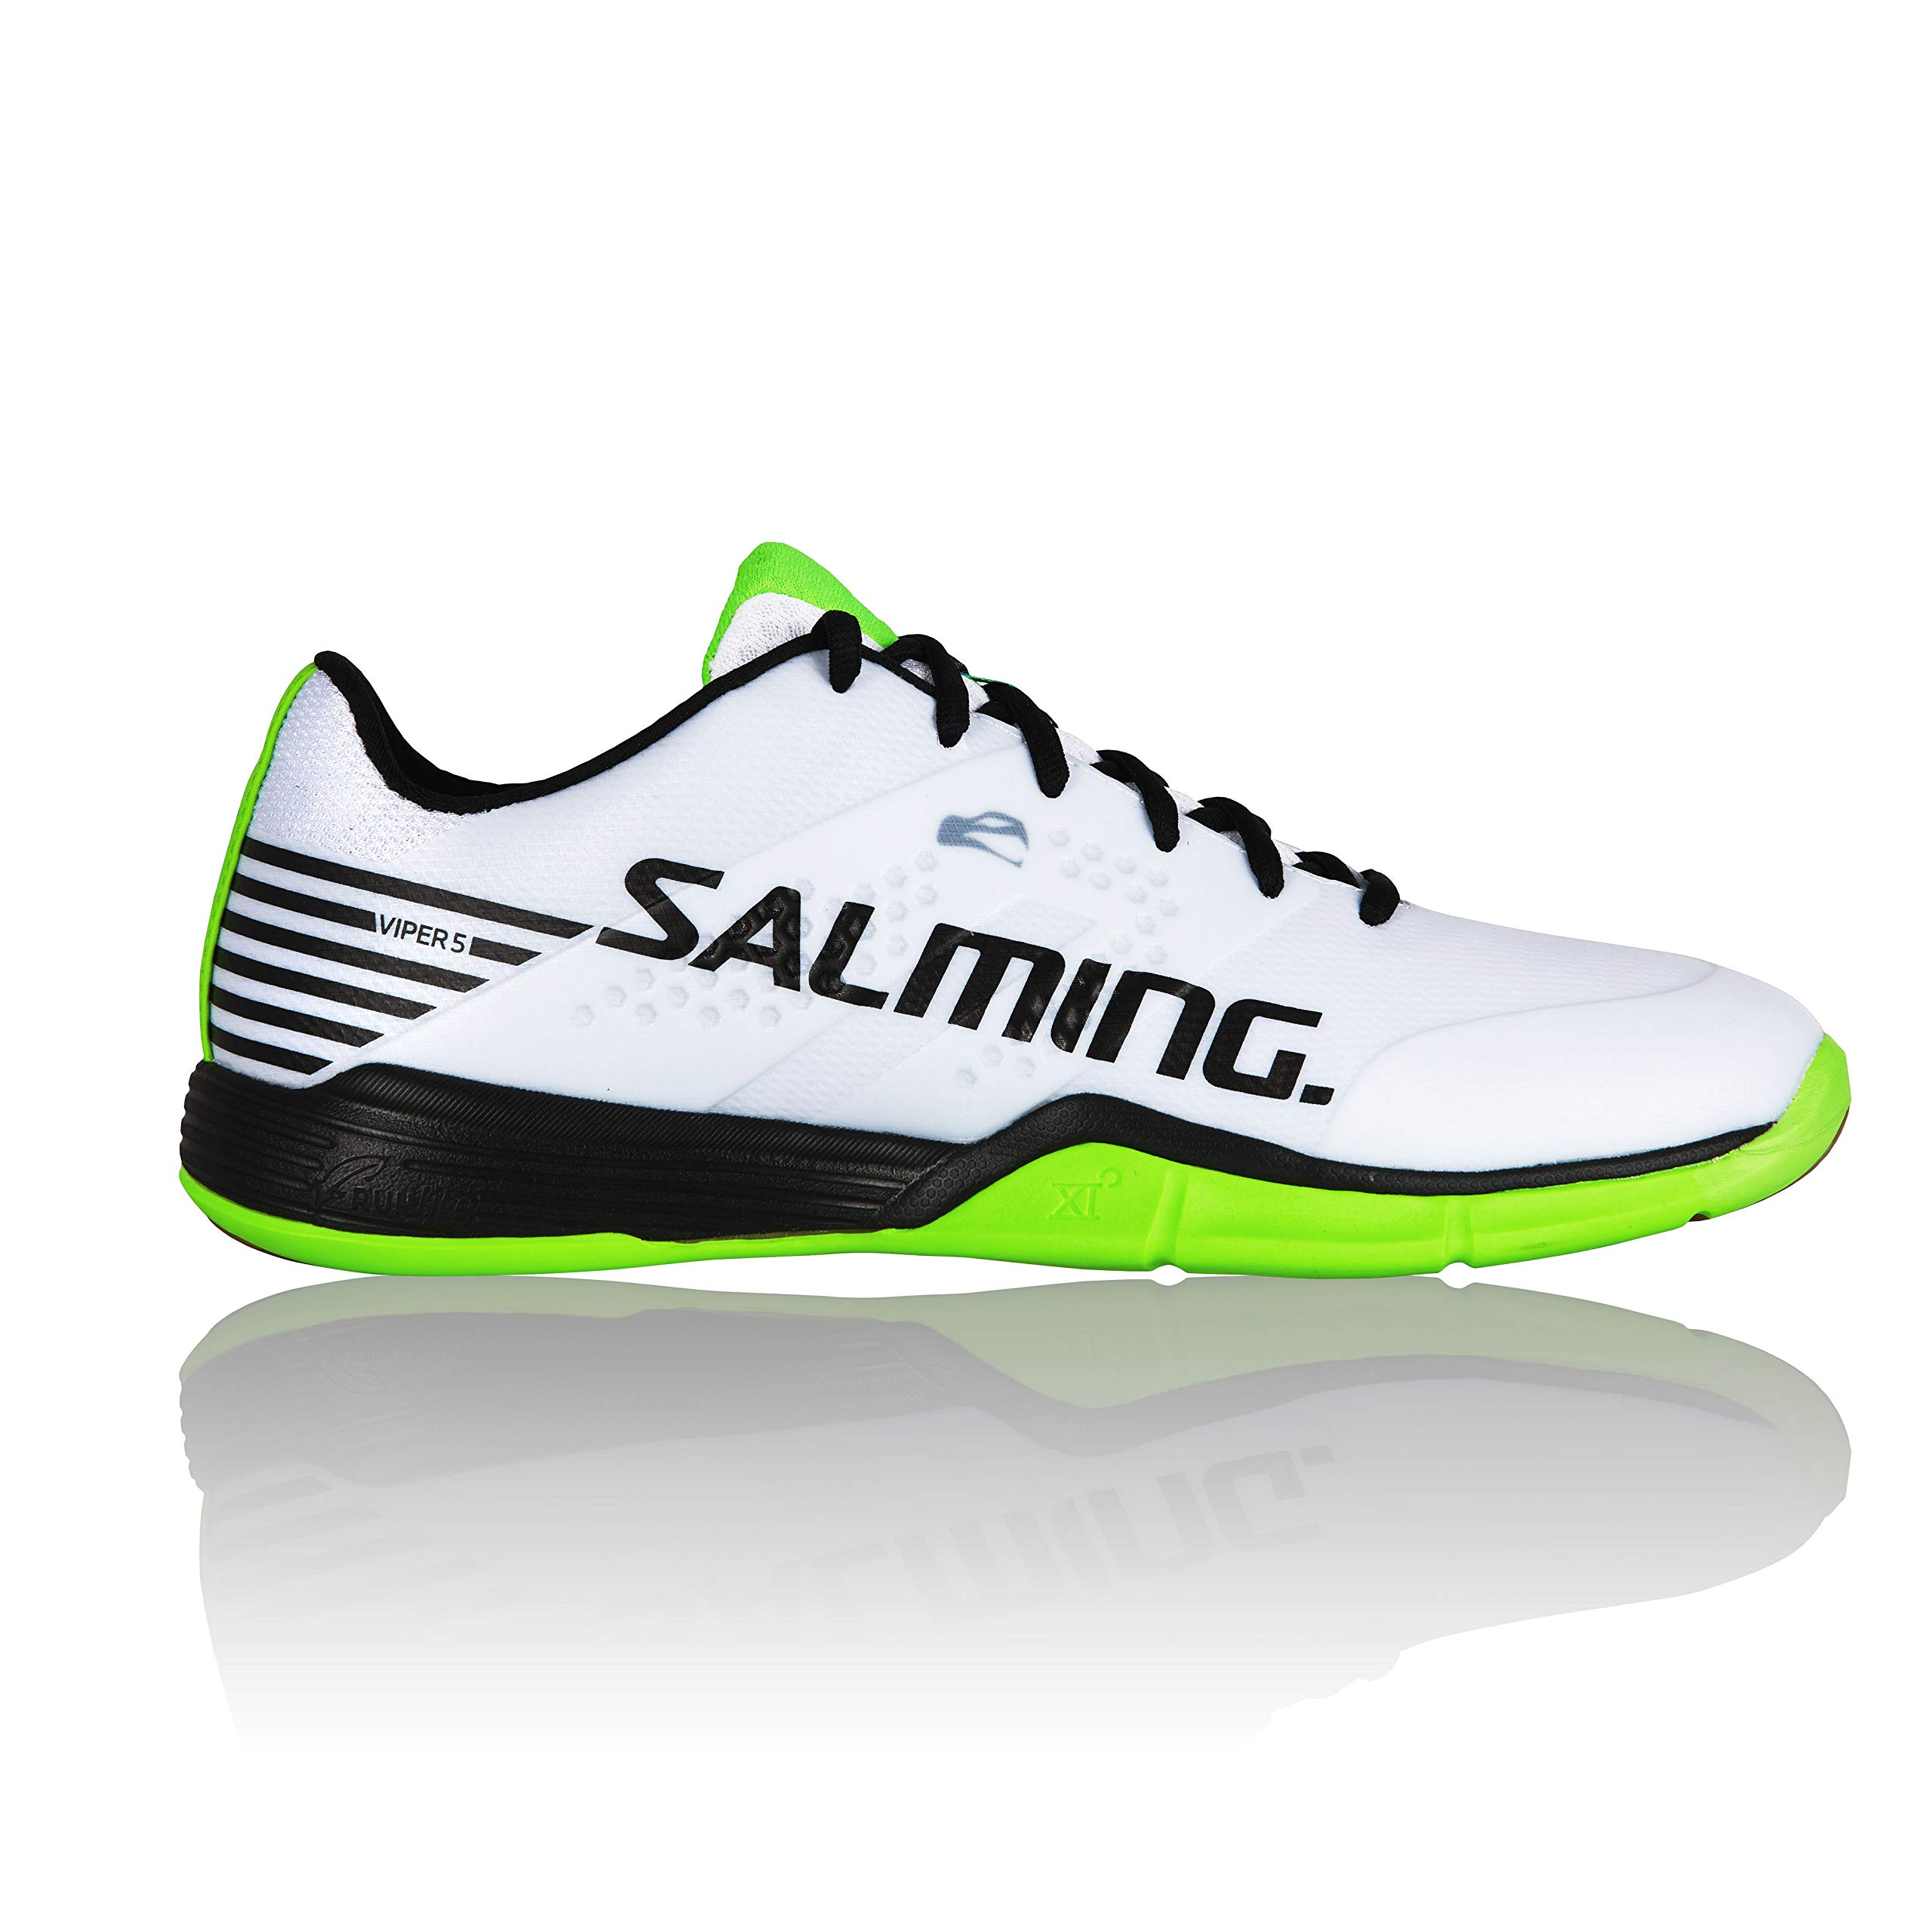 Salming Viper 5 Men Shoe, Color: White/Black, Size: 9.5 (1238071-0701-4313)